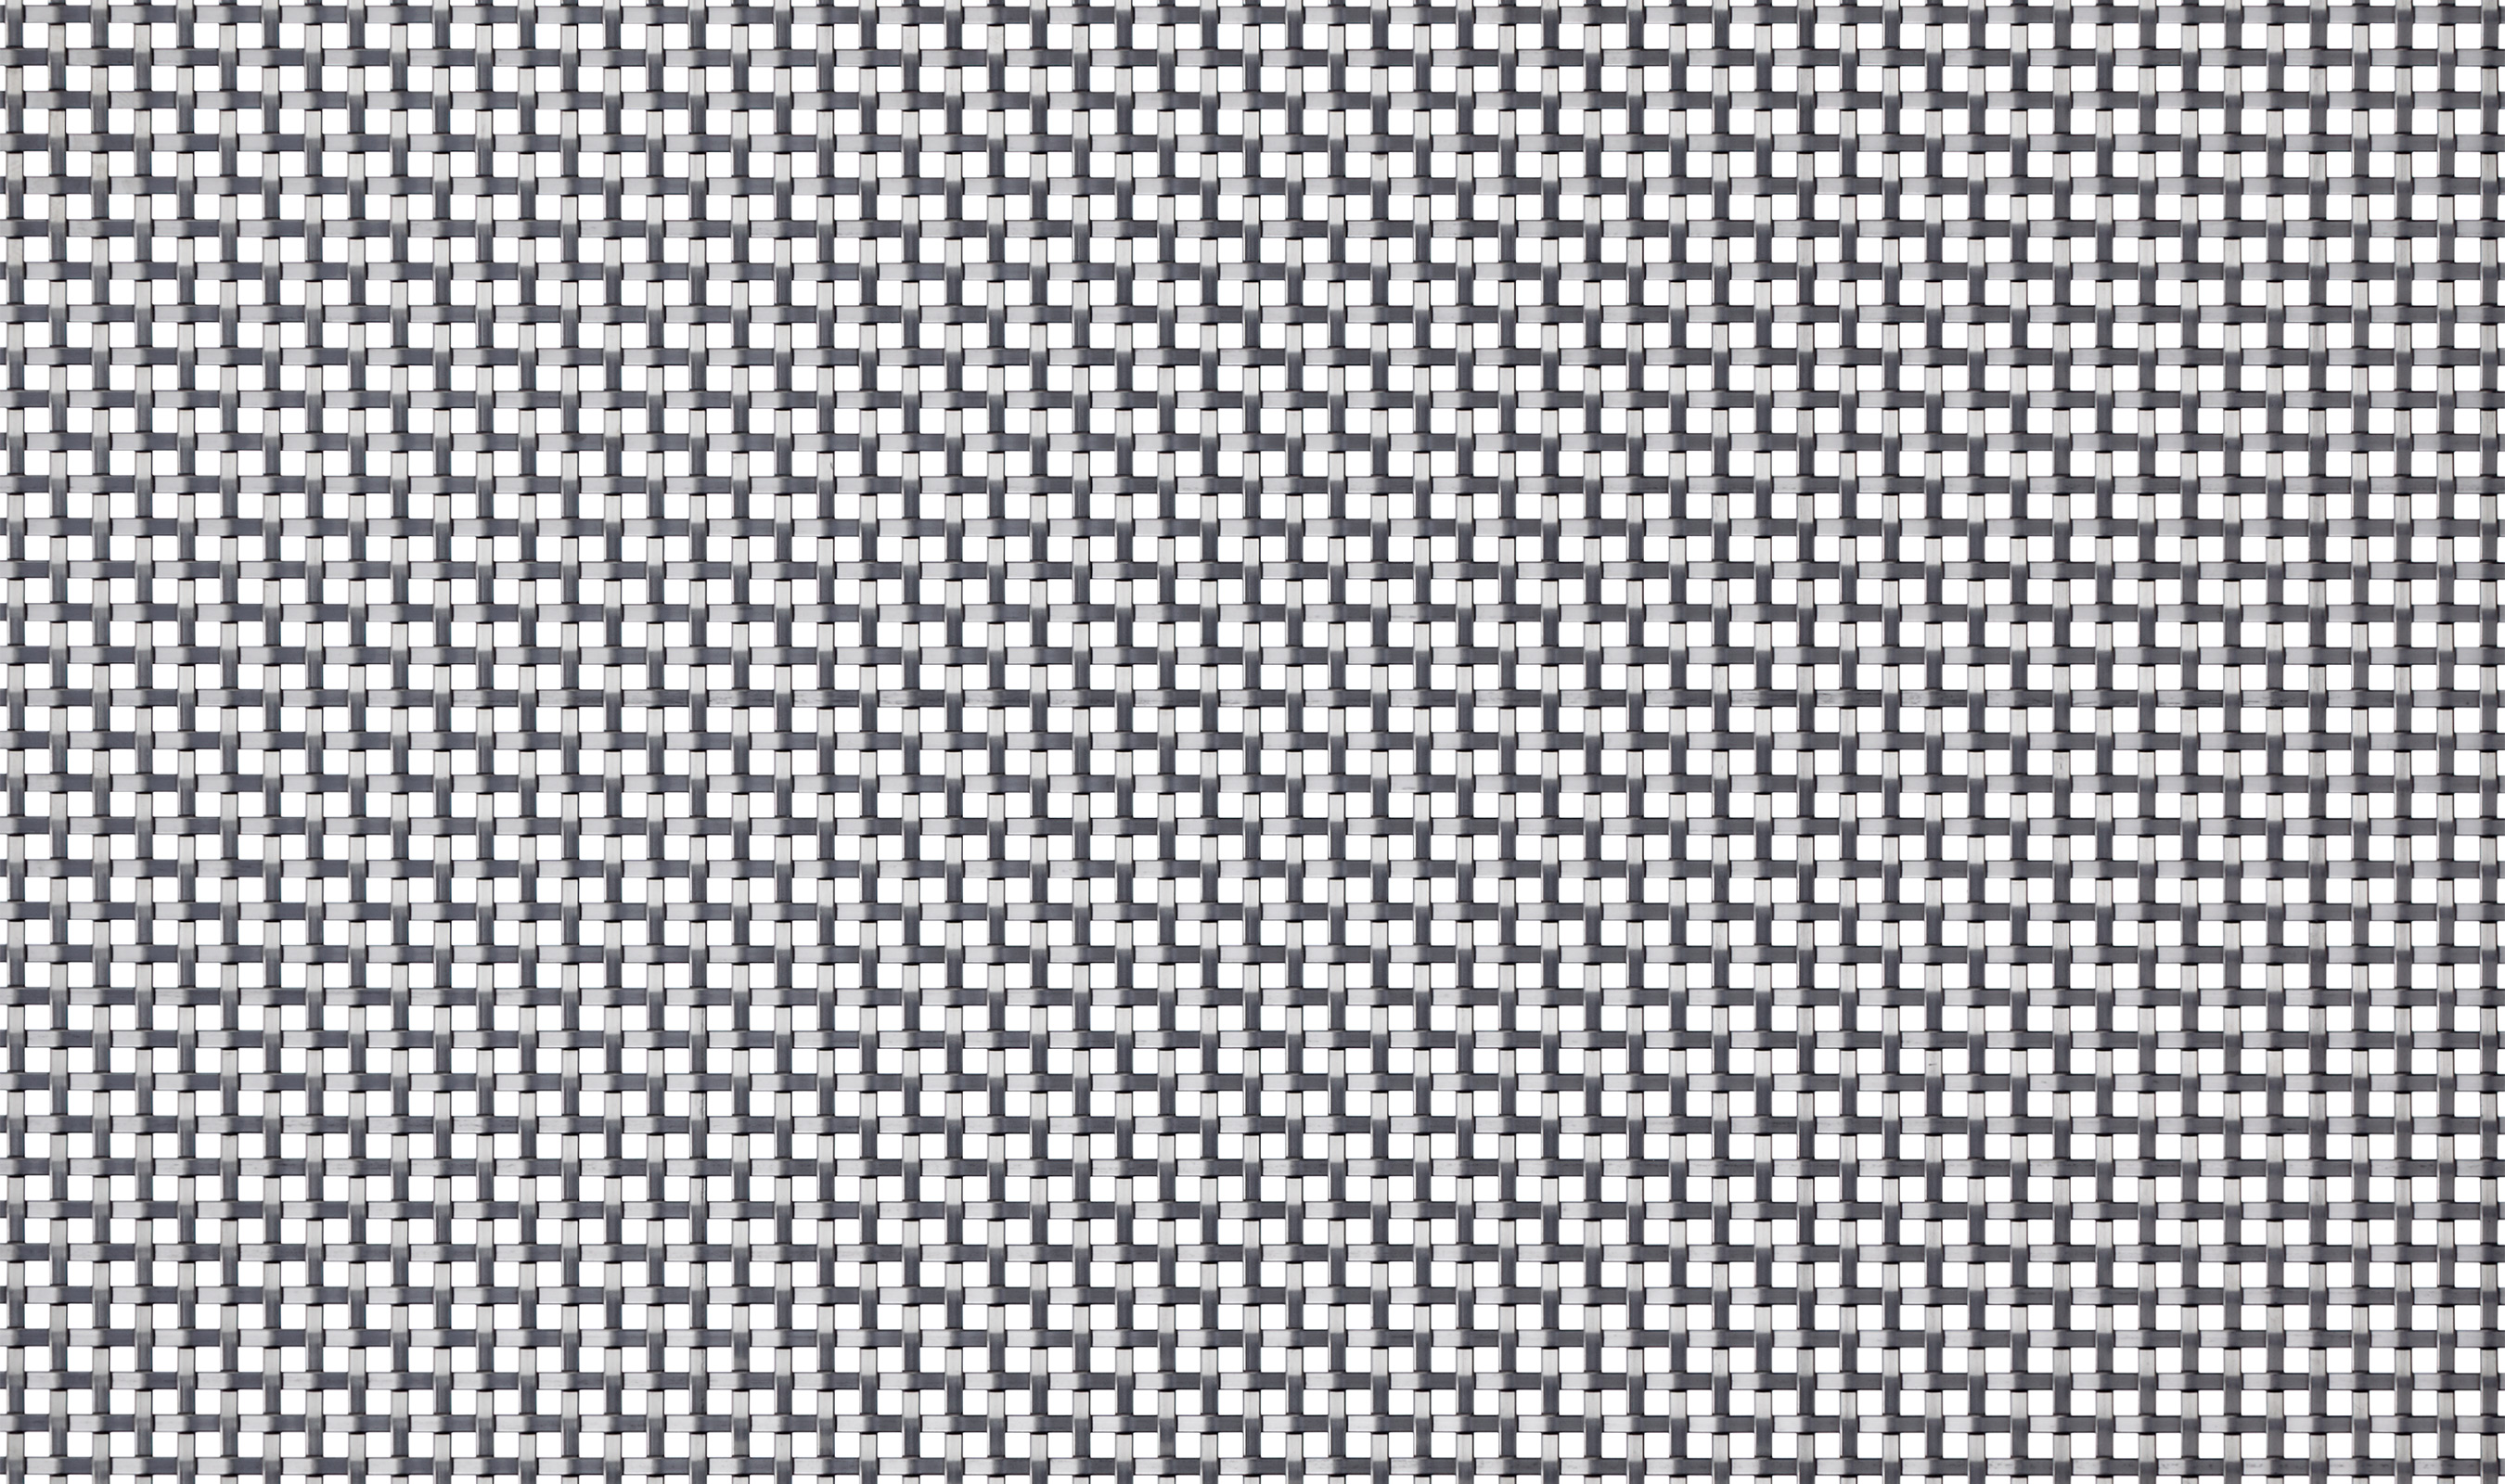 S-32 Angle in Stainless Woven Wire Mesh